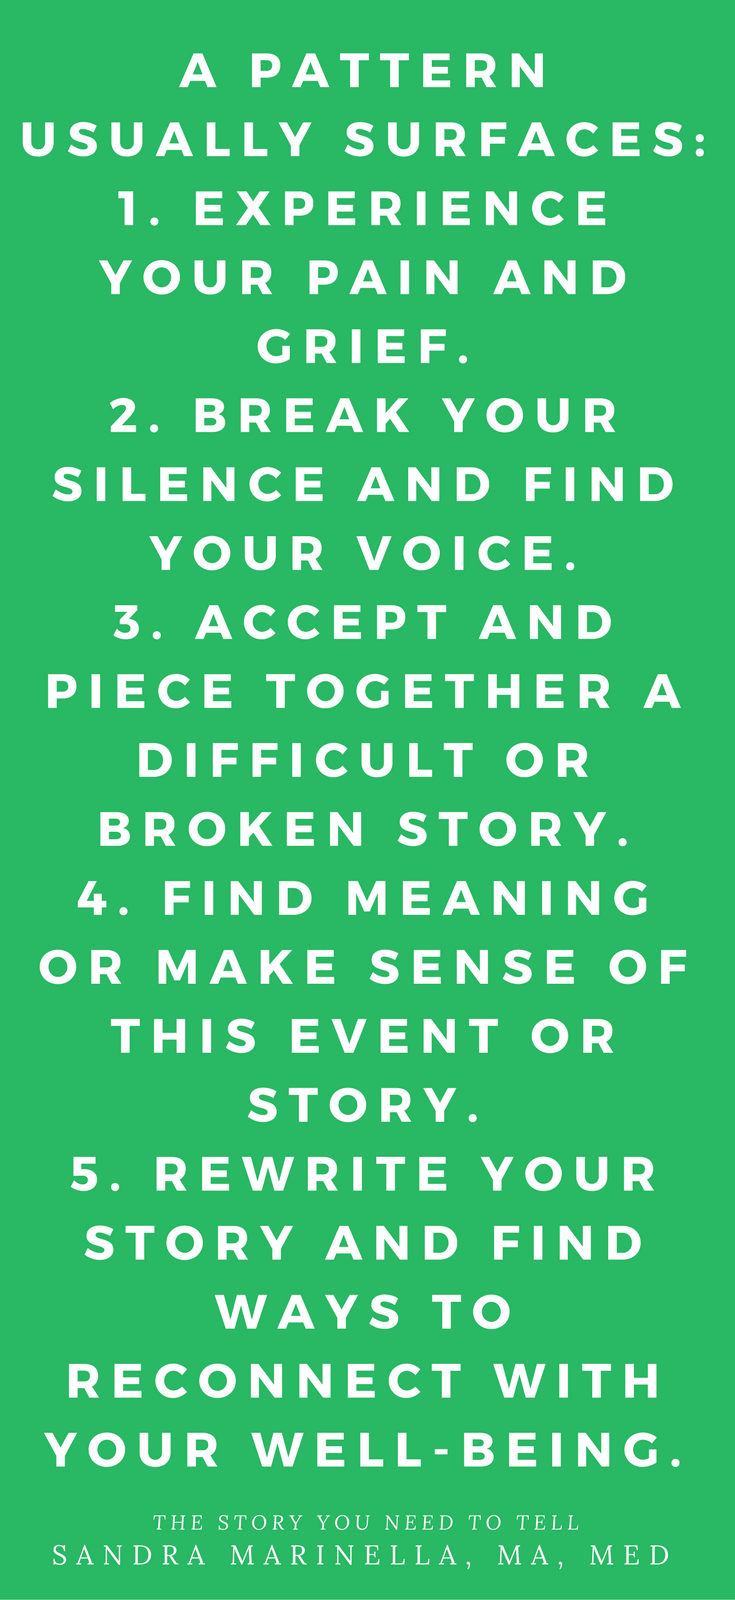 The Story You Need to Tell by Sandra Marinella